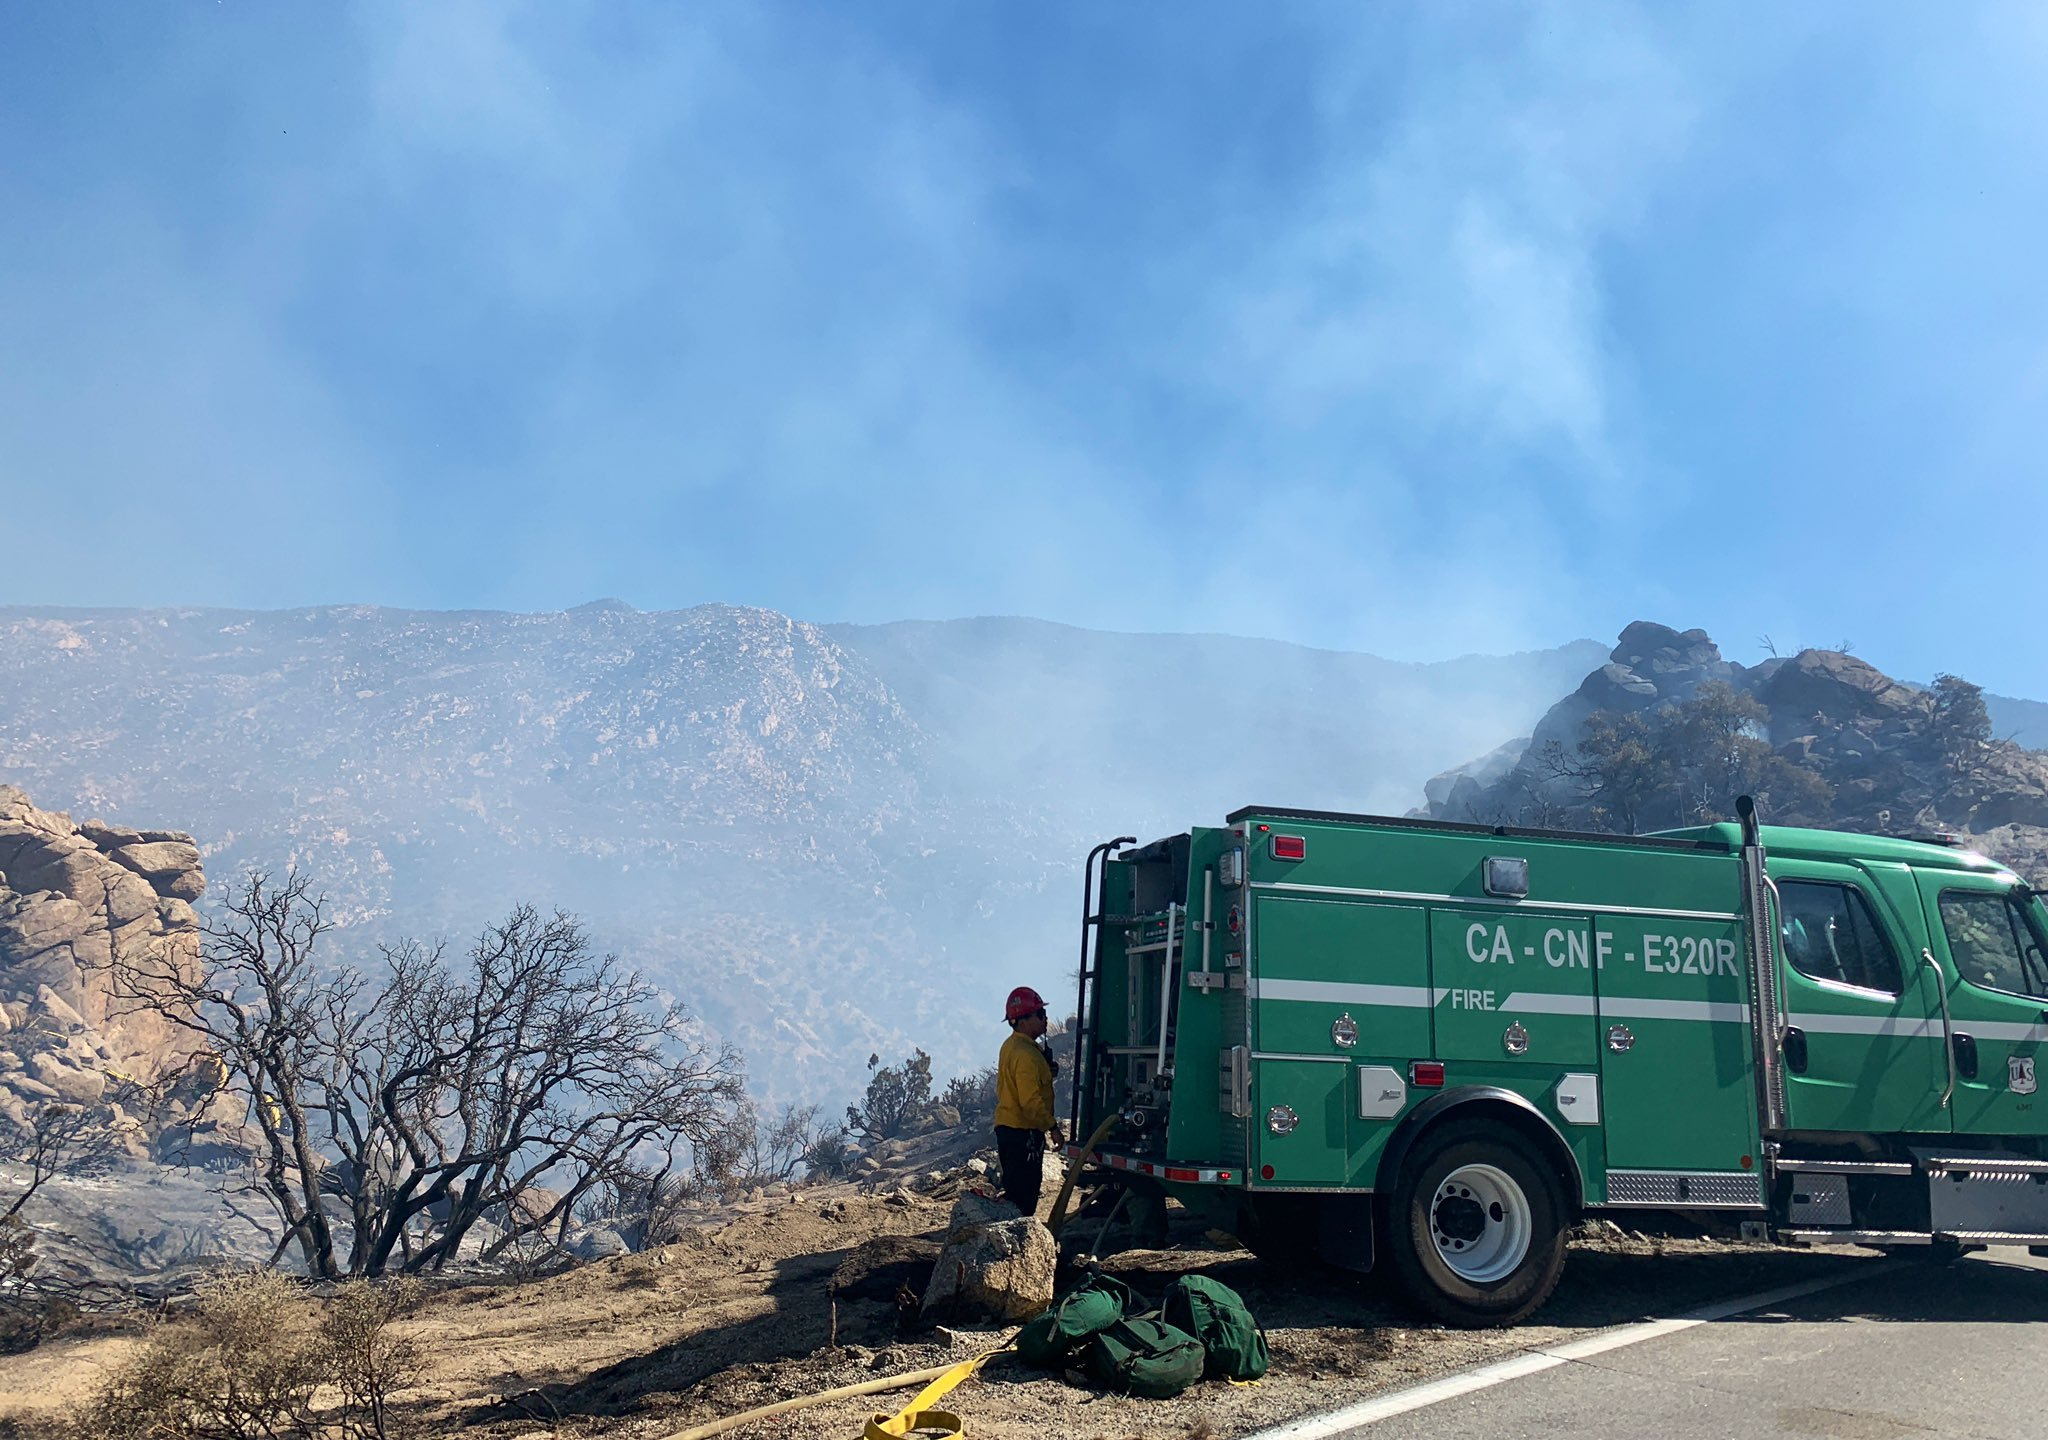 The 400-acre Flats Fire burning in Riverside County was 60% contained as of Tuesday, June 15, 2021. (San Bernardino National Forest)